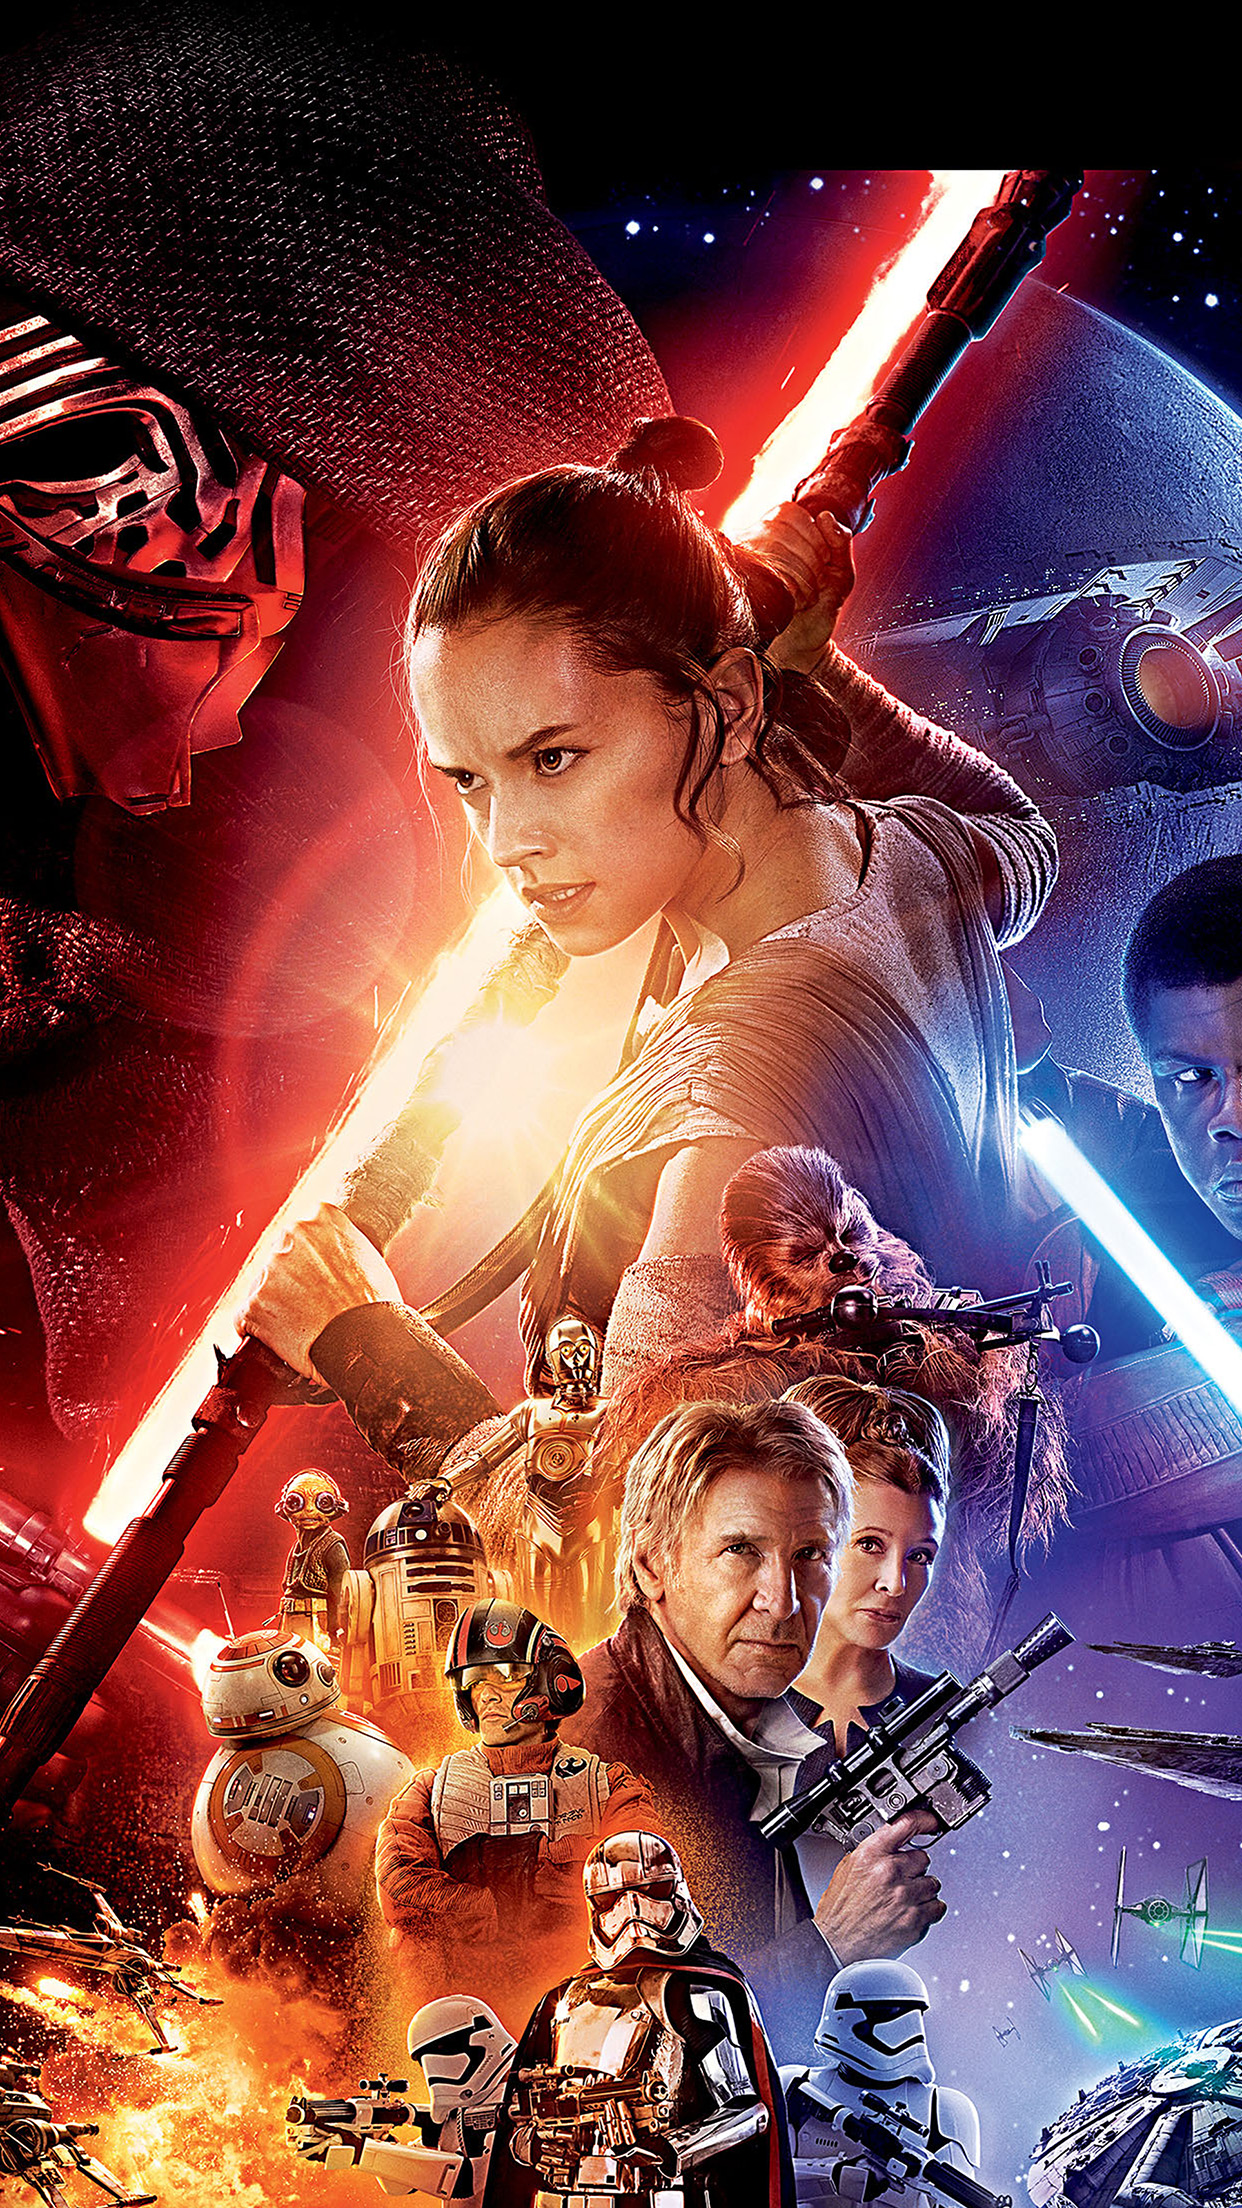 An78 Starwars The Force Awakens Film Poster Art Papers Co